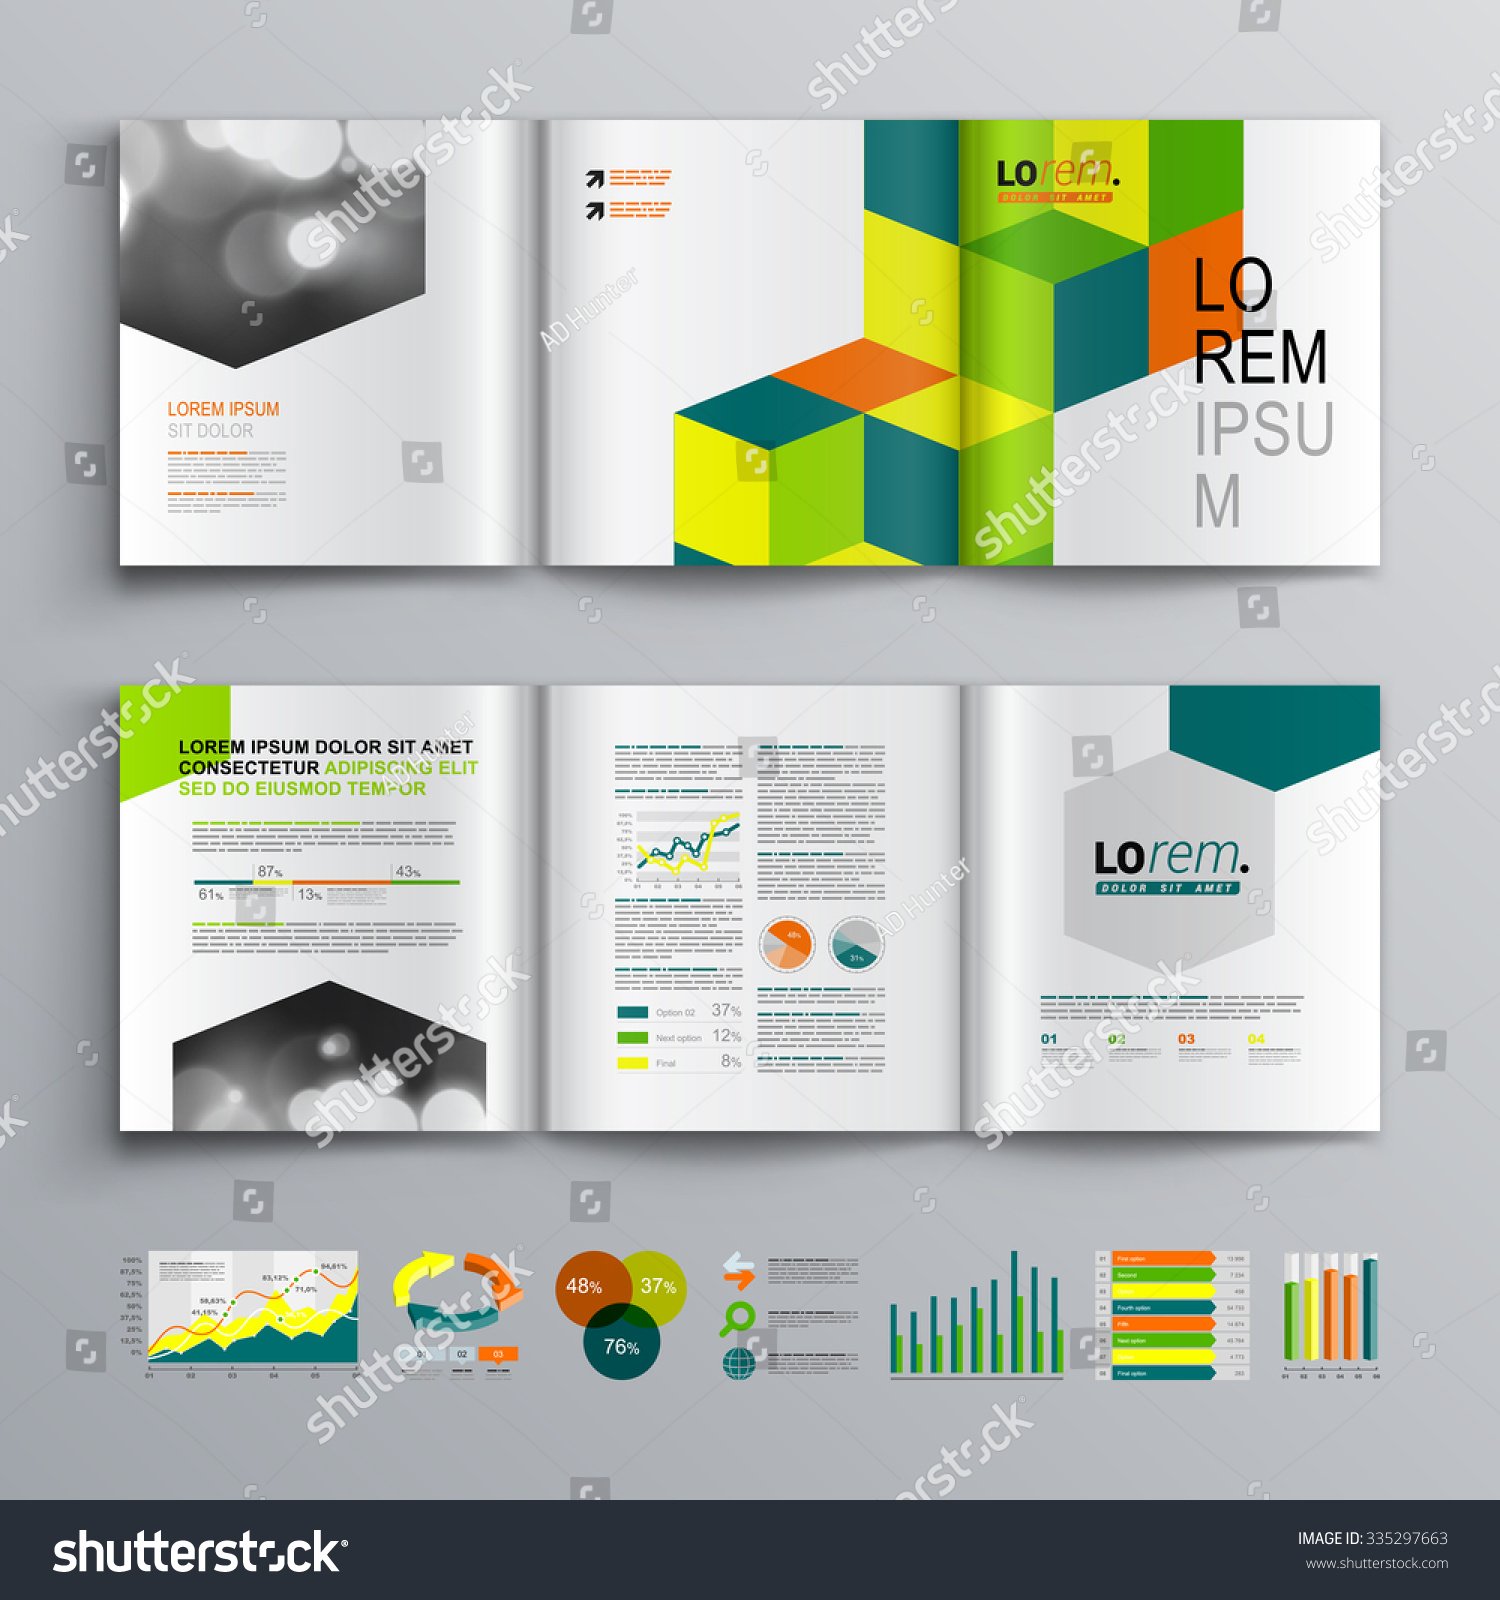 Business Brochure Template Design Cubes Square Stock Vector (Royalty ...